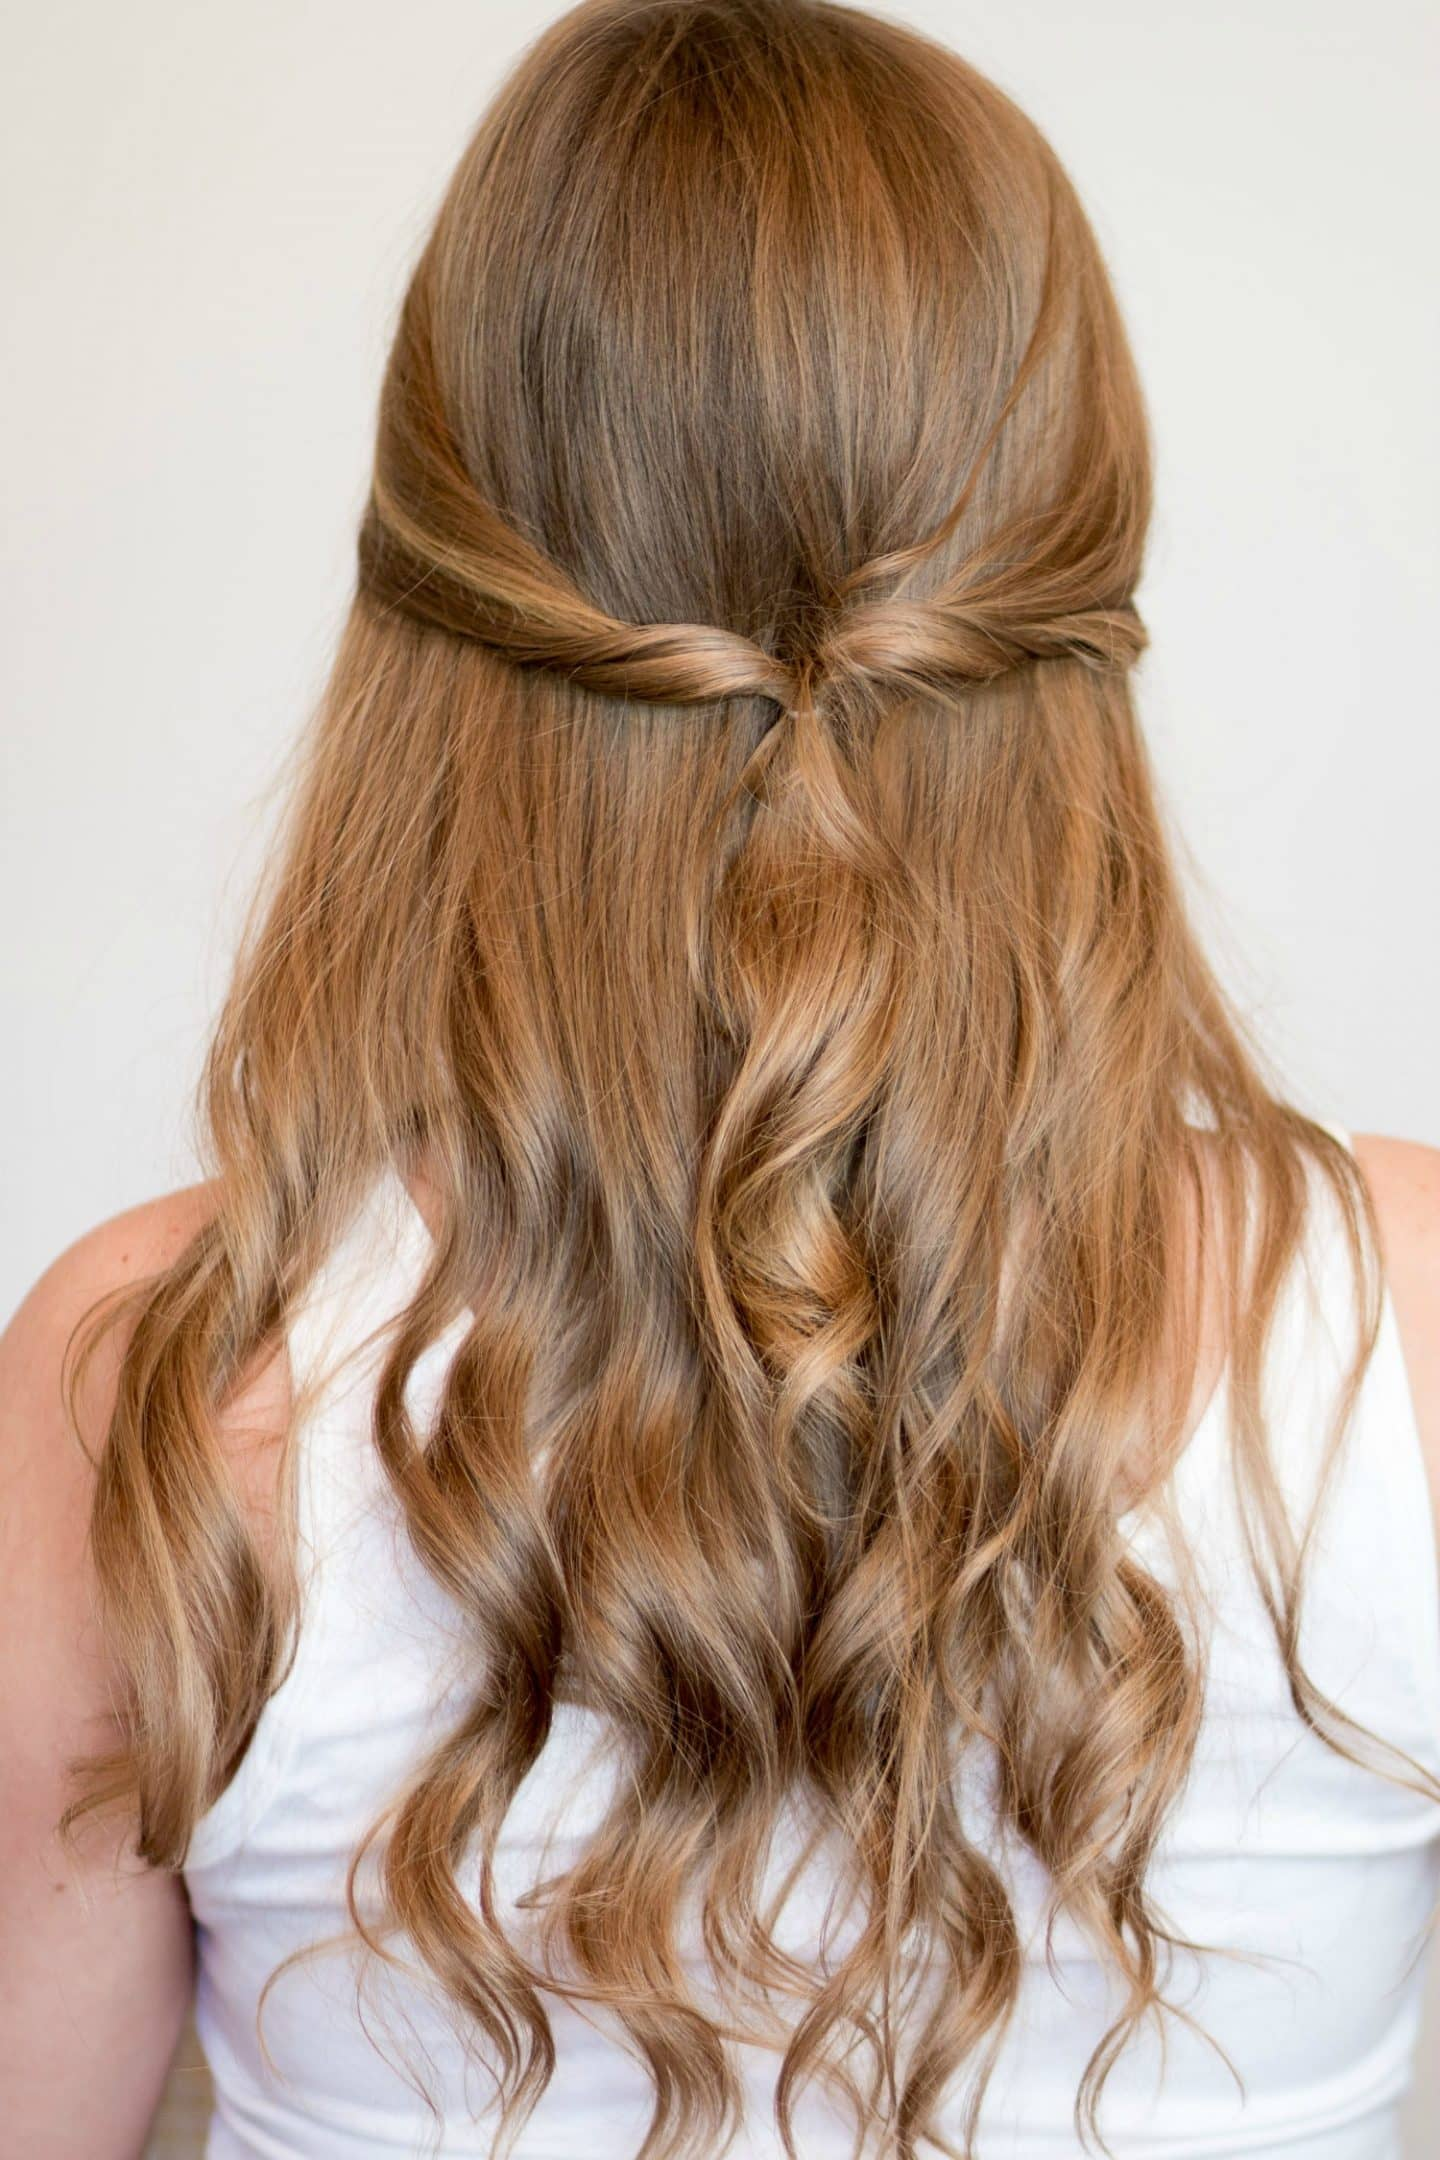 Easy Heatless Hairstyles For Long Hair